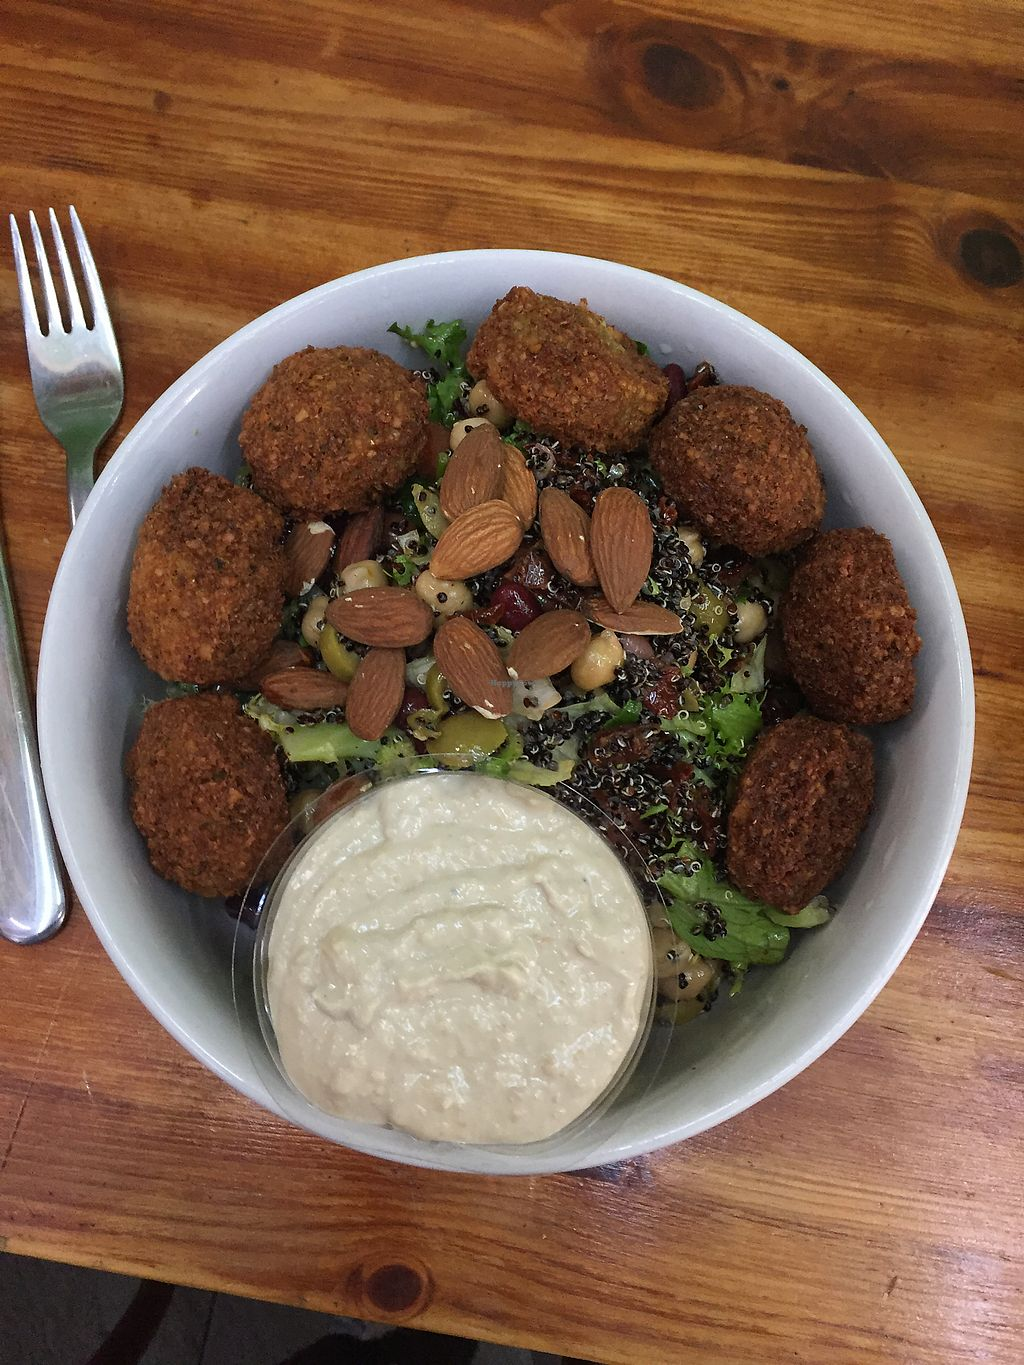 """Photo of Green Smile  by <a href=""""/members/profile/Madeleineg97"""">Madeleineg97</a> <br/>Falafel sallad <br/> September 27, 2017  - <a href='/contact/abuse/image/76901/309043'>Report</a>"""